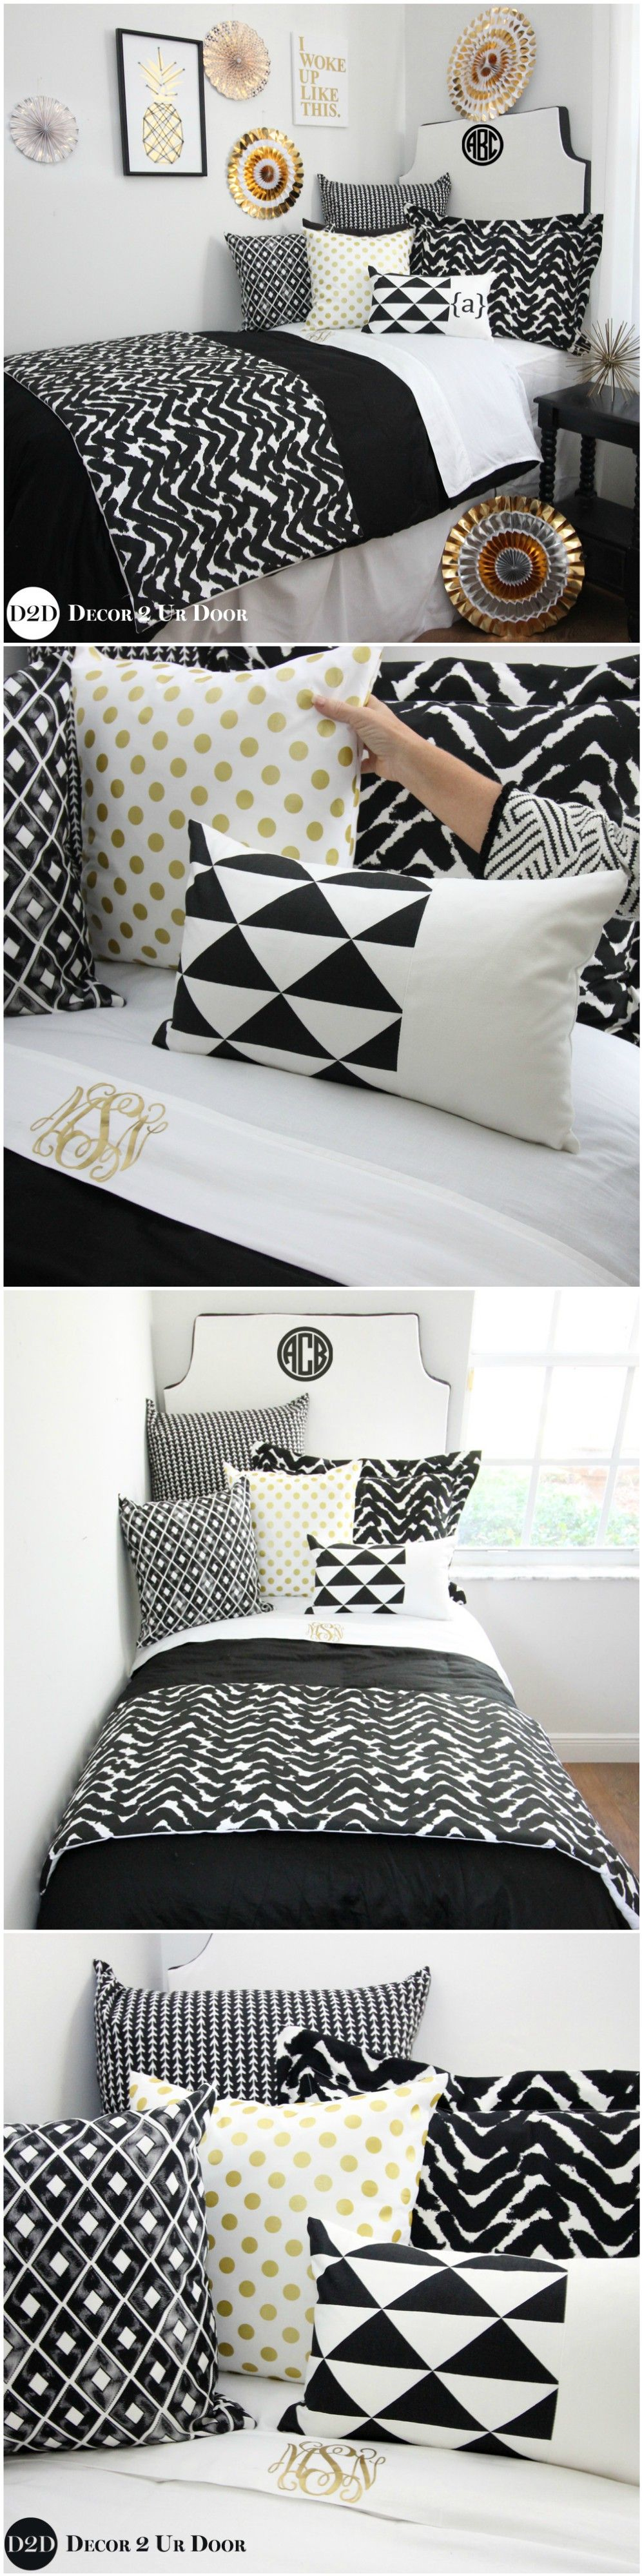 Black White And Gold Dorm Room Bedding And Decor Bold Black And Beautiful This Black And White And Gold Dorm Room Bedding Dorm Bedding Sets Dorm Bedding